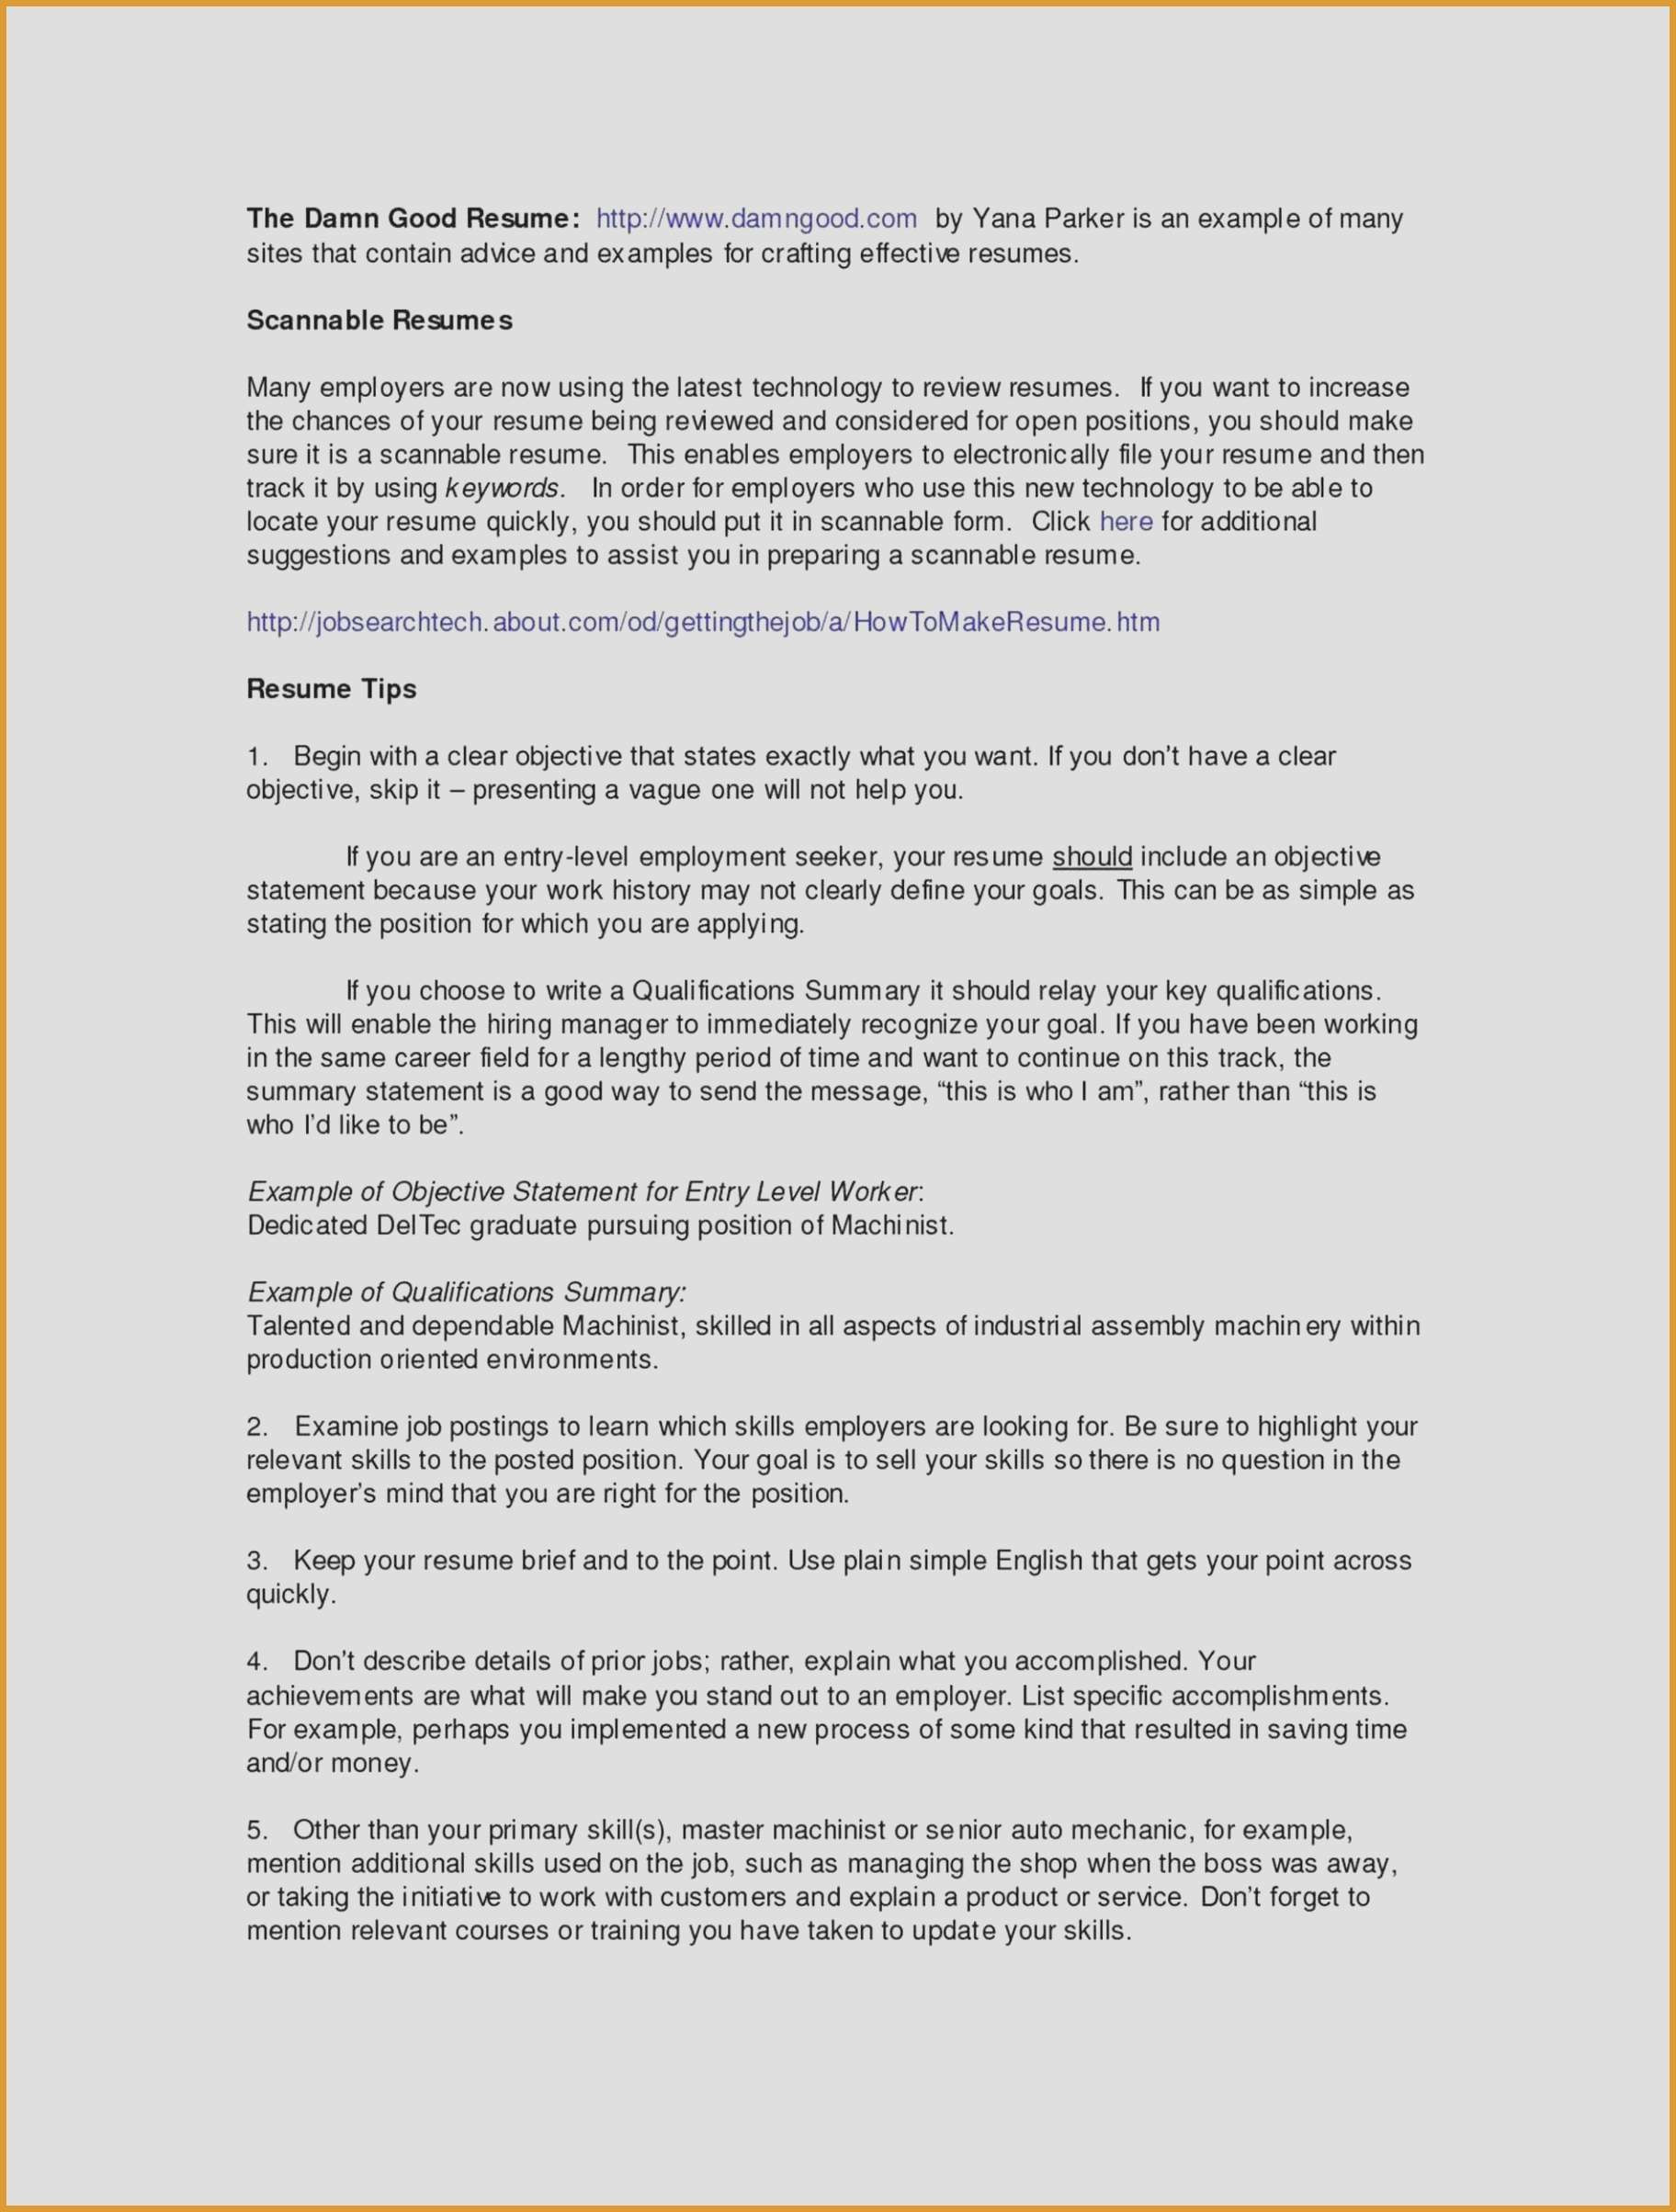 Legal assistant Resume Template - Lovely Legal assistant Resume Template Adsril